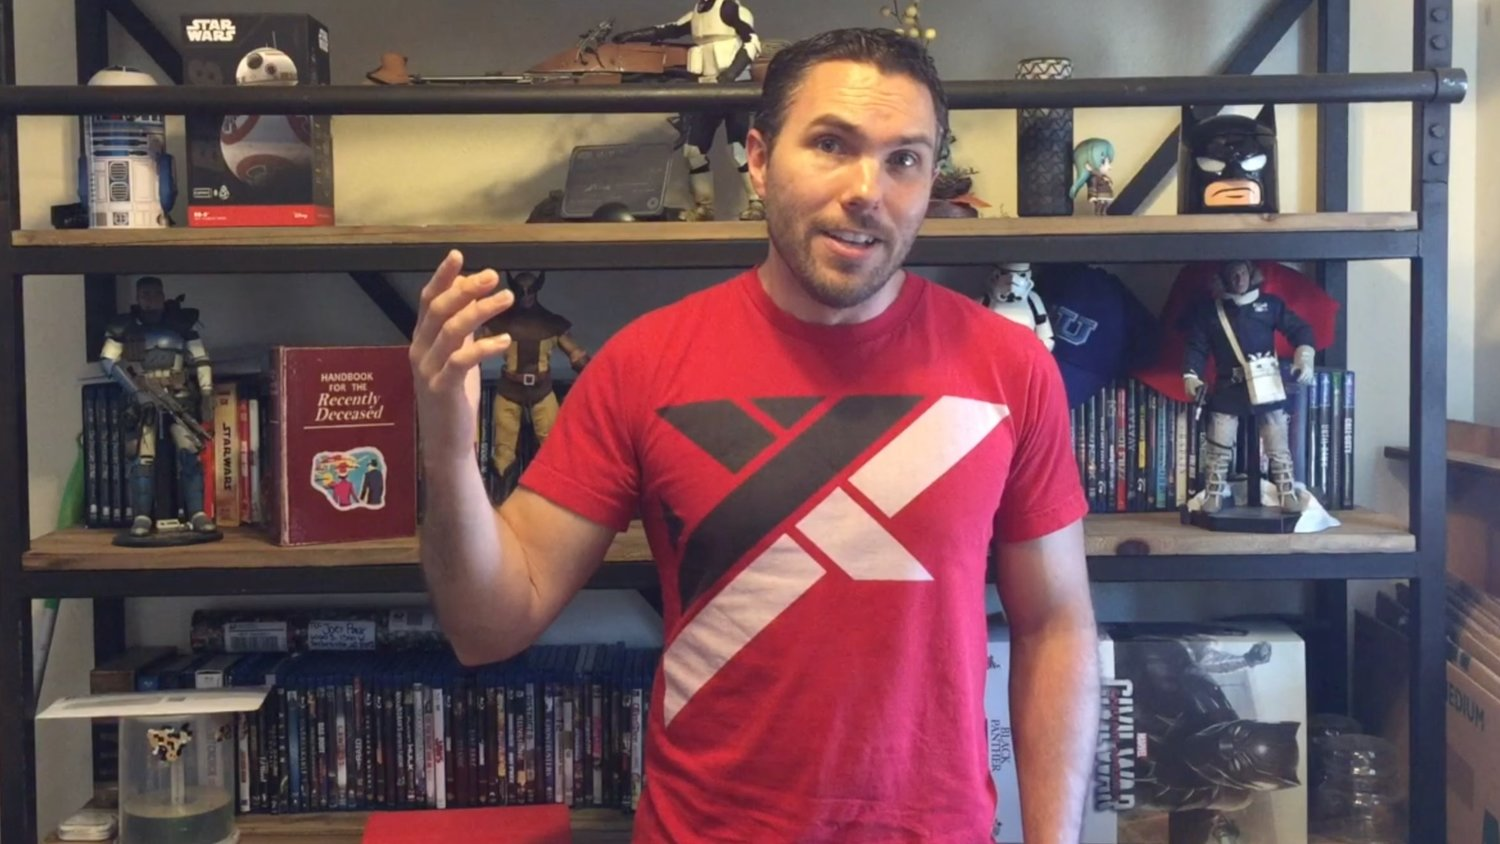 I'm Excited to Announce My GROWING UP GEEK Video Blog!